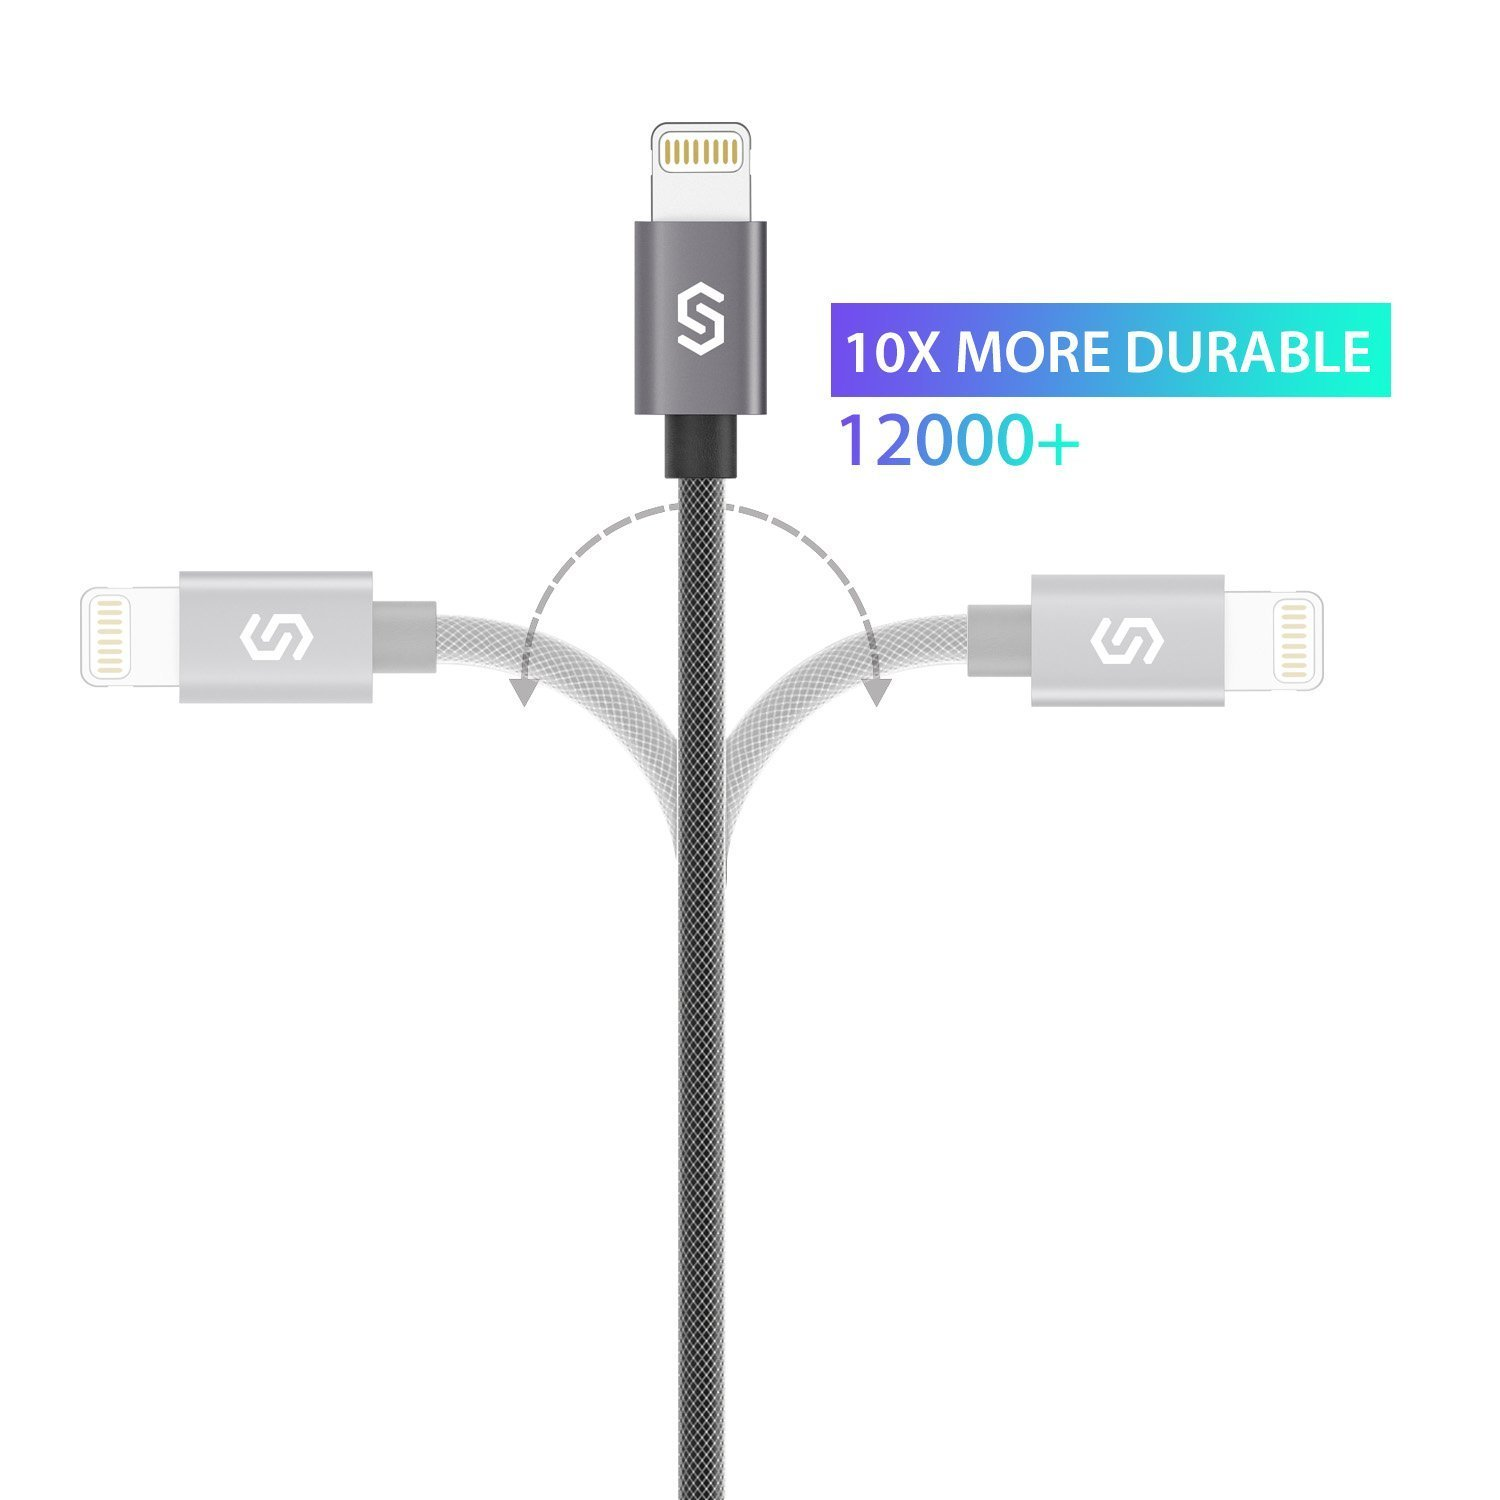 iPhone Charger Syncwire Lightning Cable - [Apple MFi Certified] 6.5ft Nylon Braided for iPhone X, 8, 8 Plus, 7, 7 Plus, 6s, 6s Plus, 6, 6 Plus, SE, 5s, 5c, 5, iPad Mini, iPad Air, Pro - Space Gray by Syncwire (Image #4)